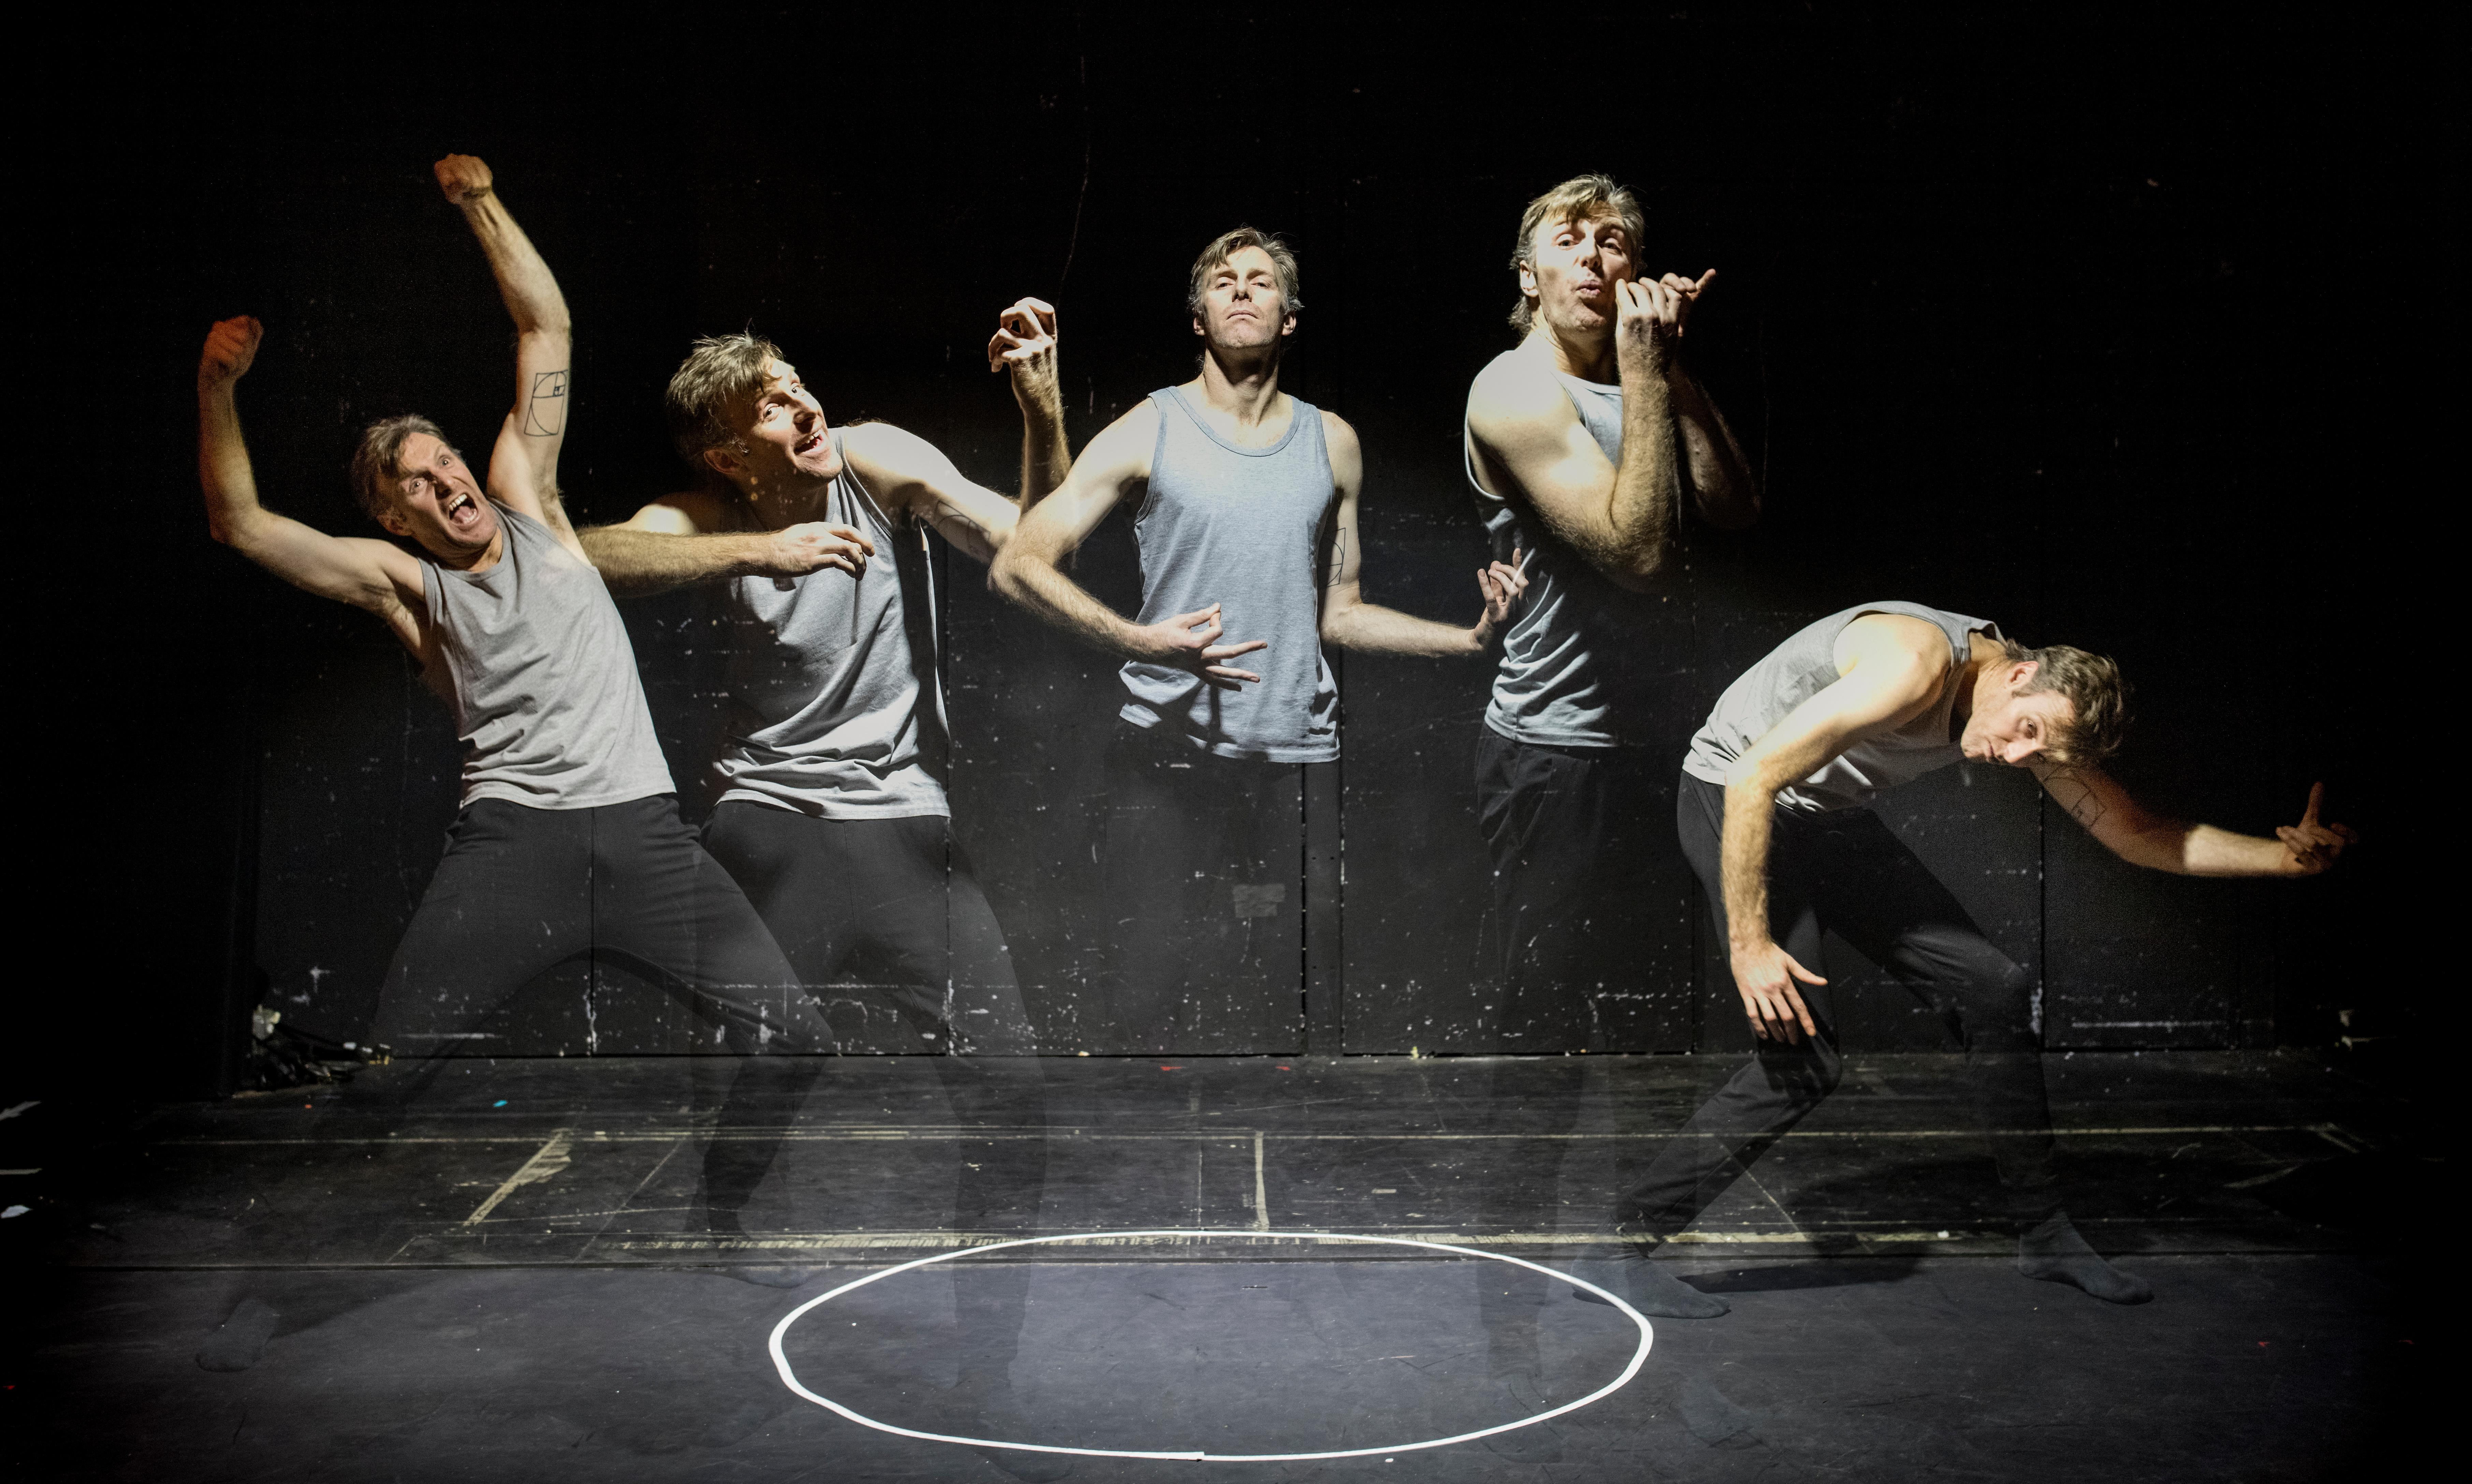 Trygve Wakenshaw review – behold the one-man band of mime